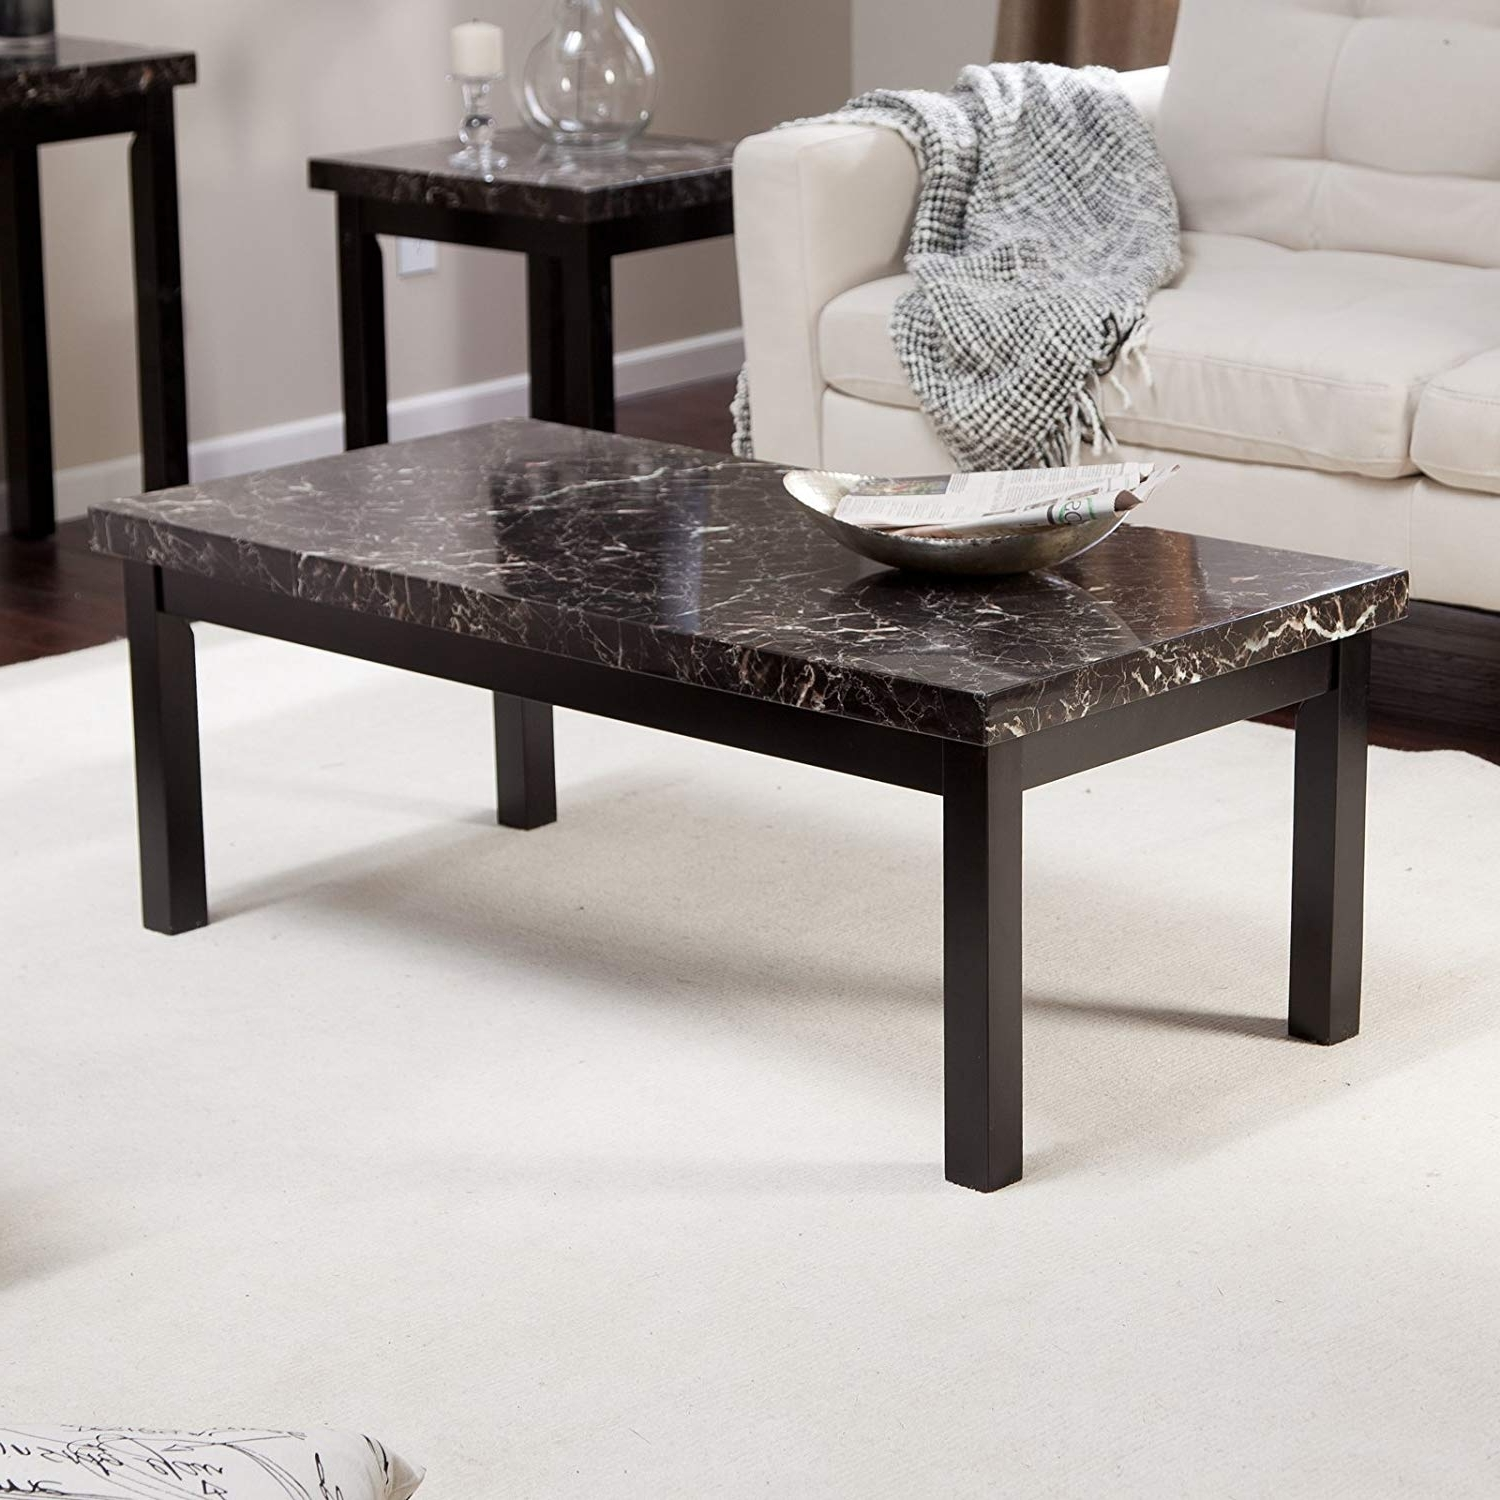 Best And Newest Amazon: Galassia Faux Marble Coffee Table: Kitchen & Dining Regarding Carly 3 Piece Triangle Dining Sets (View 14 of 25)